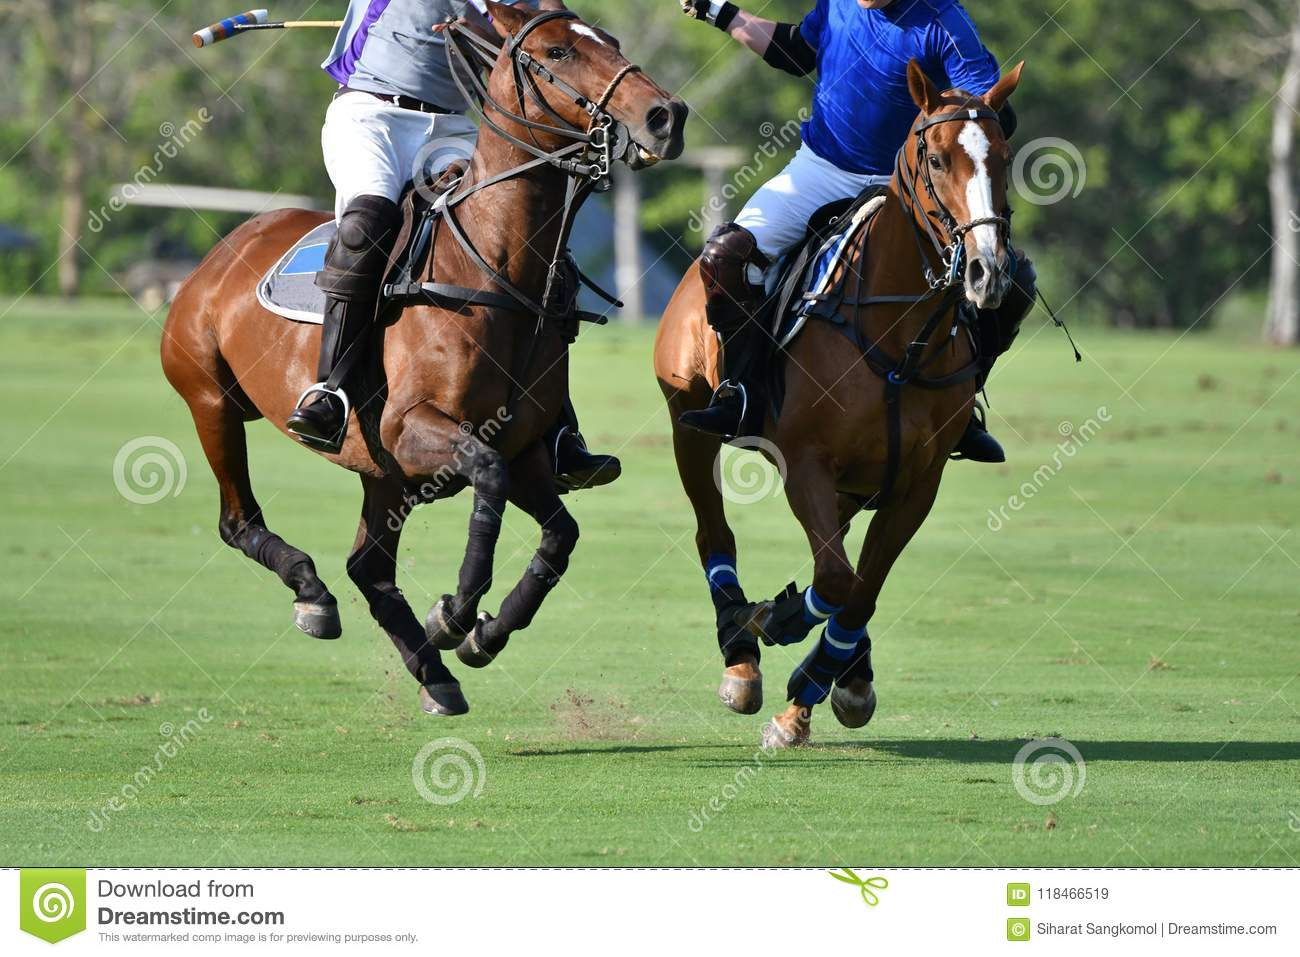 Horse Polo Players In Polo Match Stock Image Image Of Horse Fighting 118466519